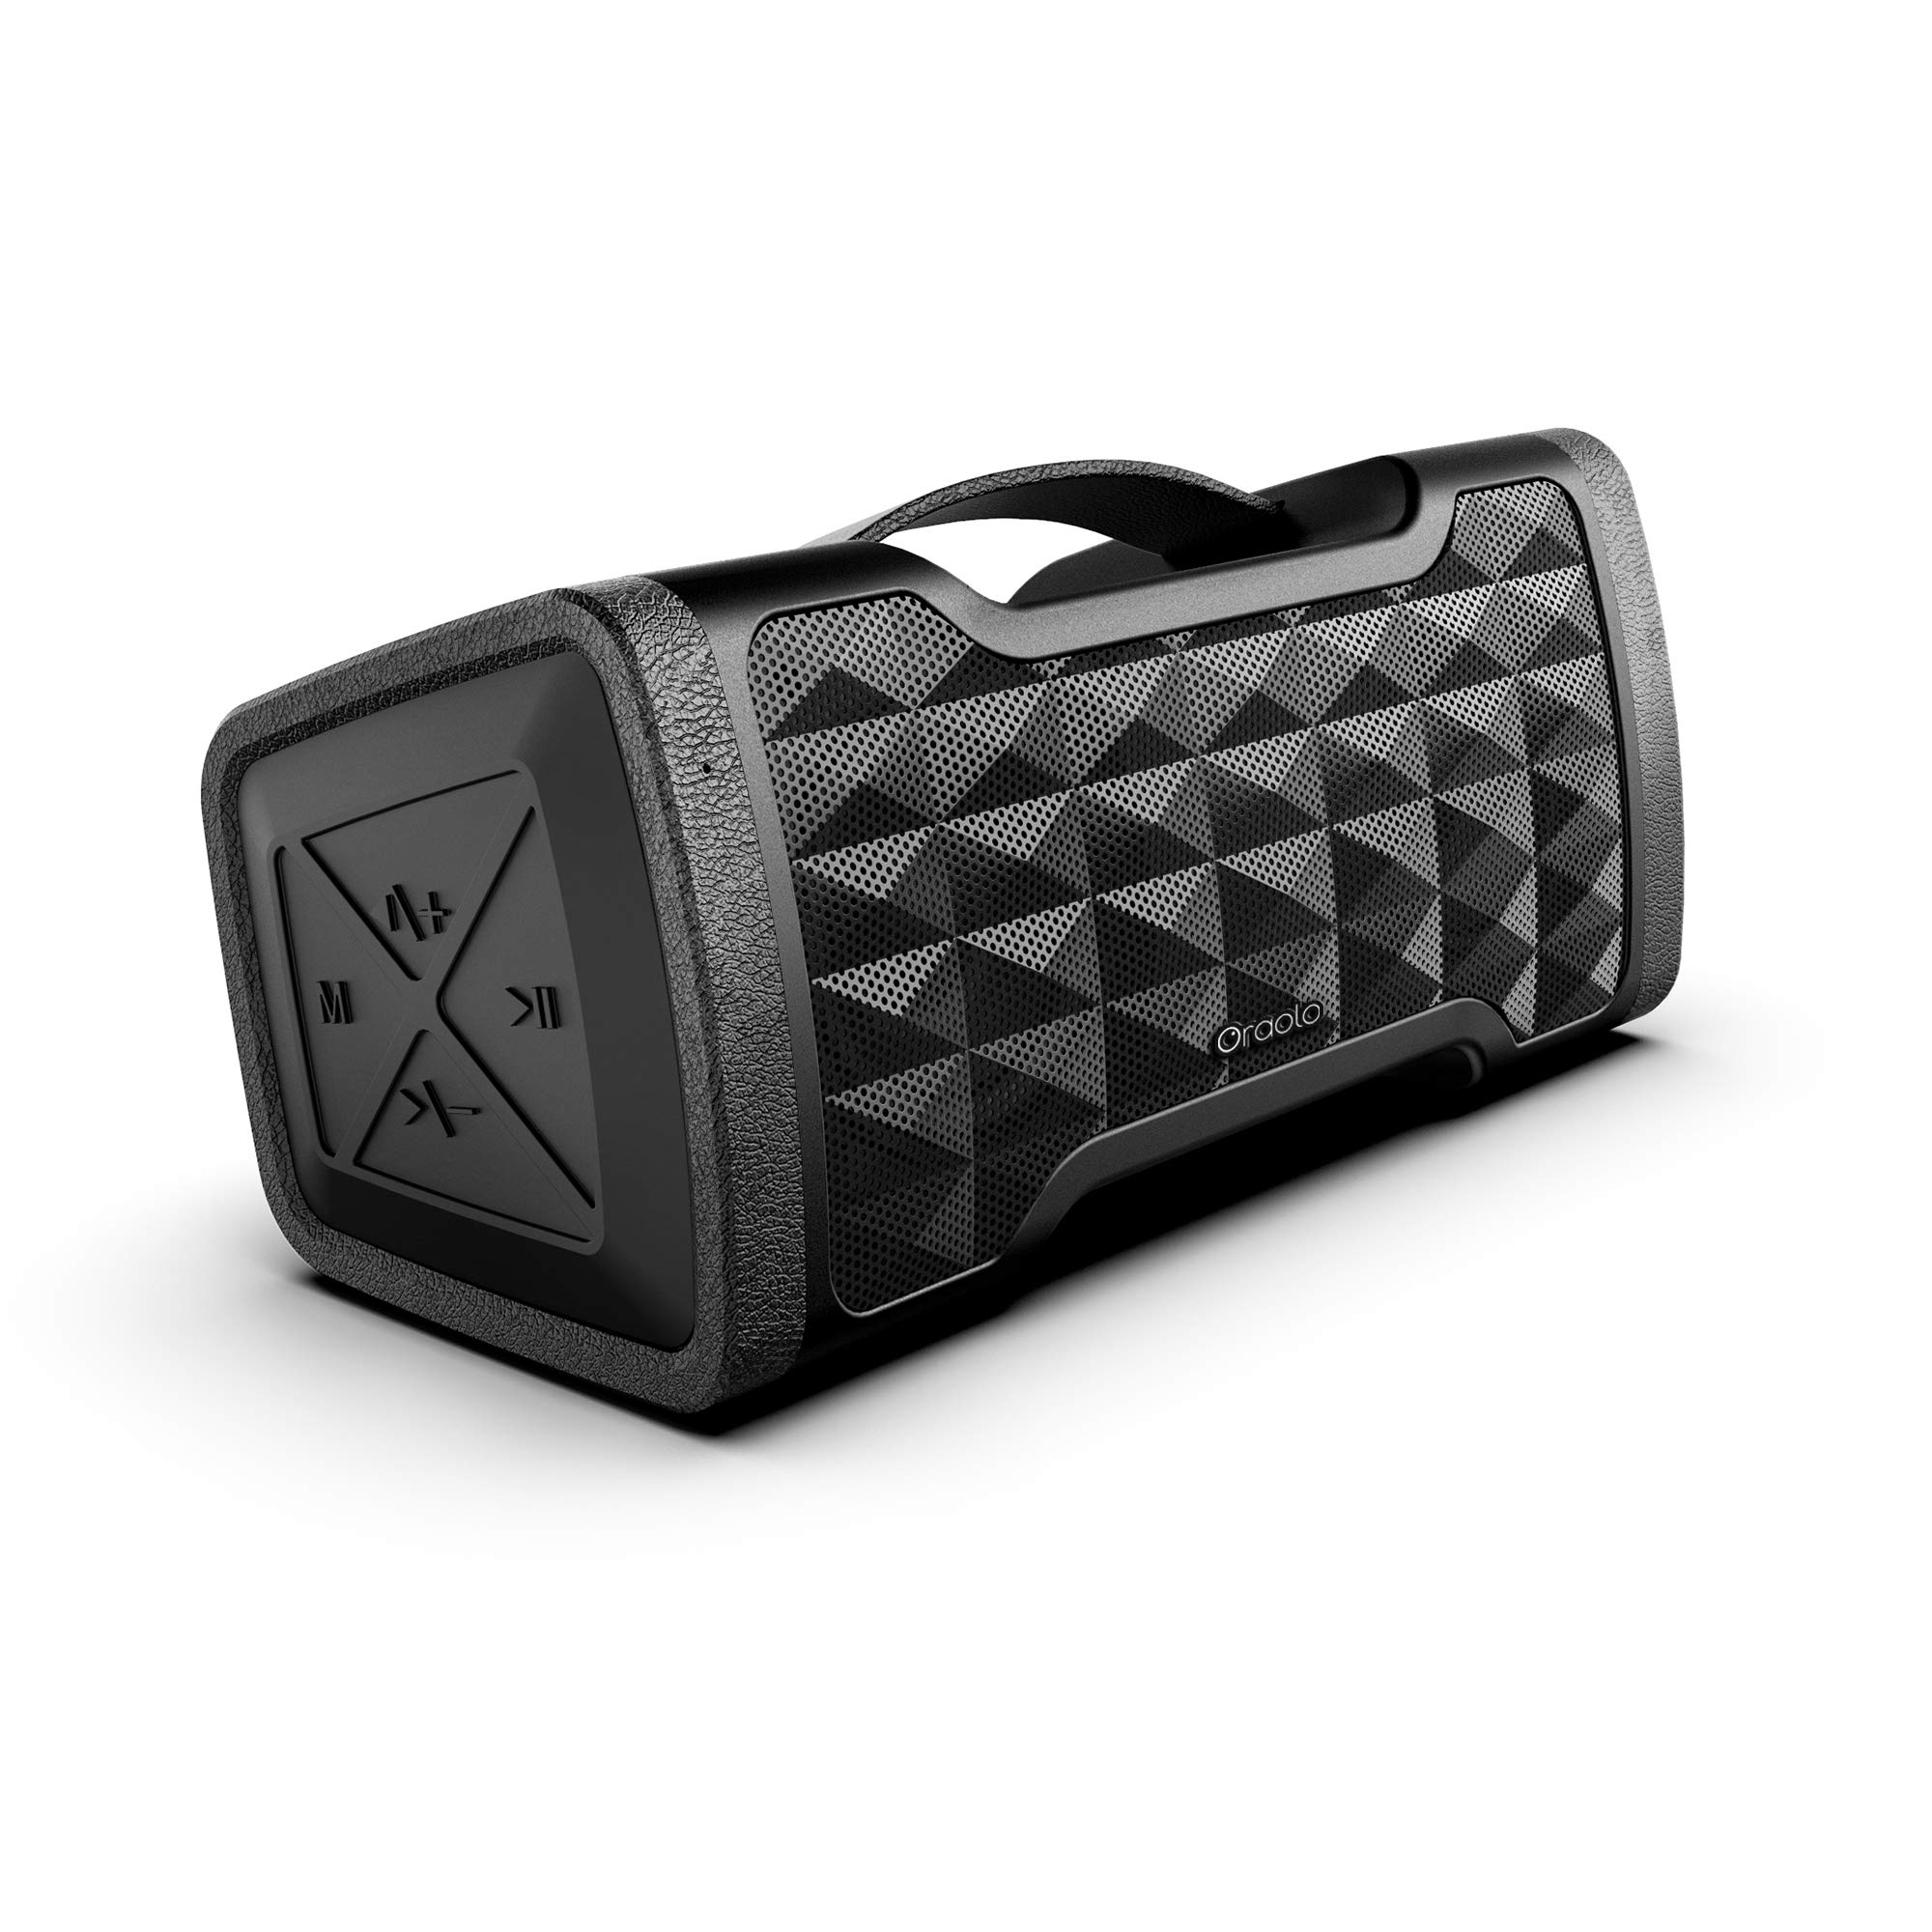 Portable Bluetooth Speakers, IPX5 Waterproof Speakers with 24W Stereo Sound, Bluetooth 5.0 and Built-in Mic, 20H Playtime Outdoor Speakers, Durable Design Suitable for Travel, Party, Camping, Black by oraolo